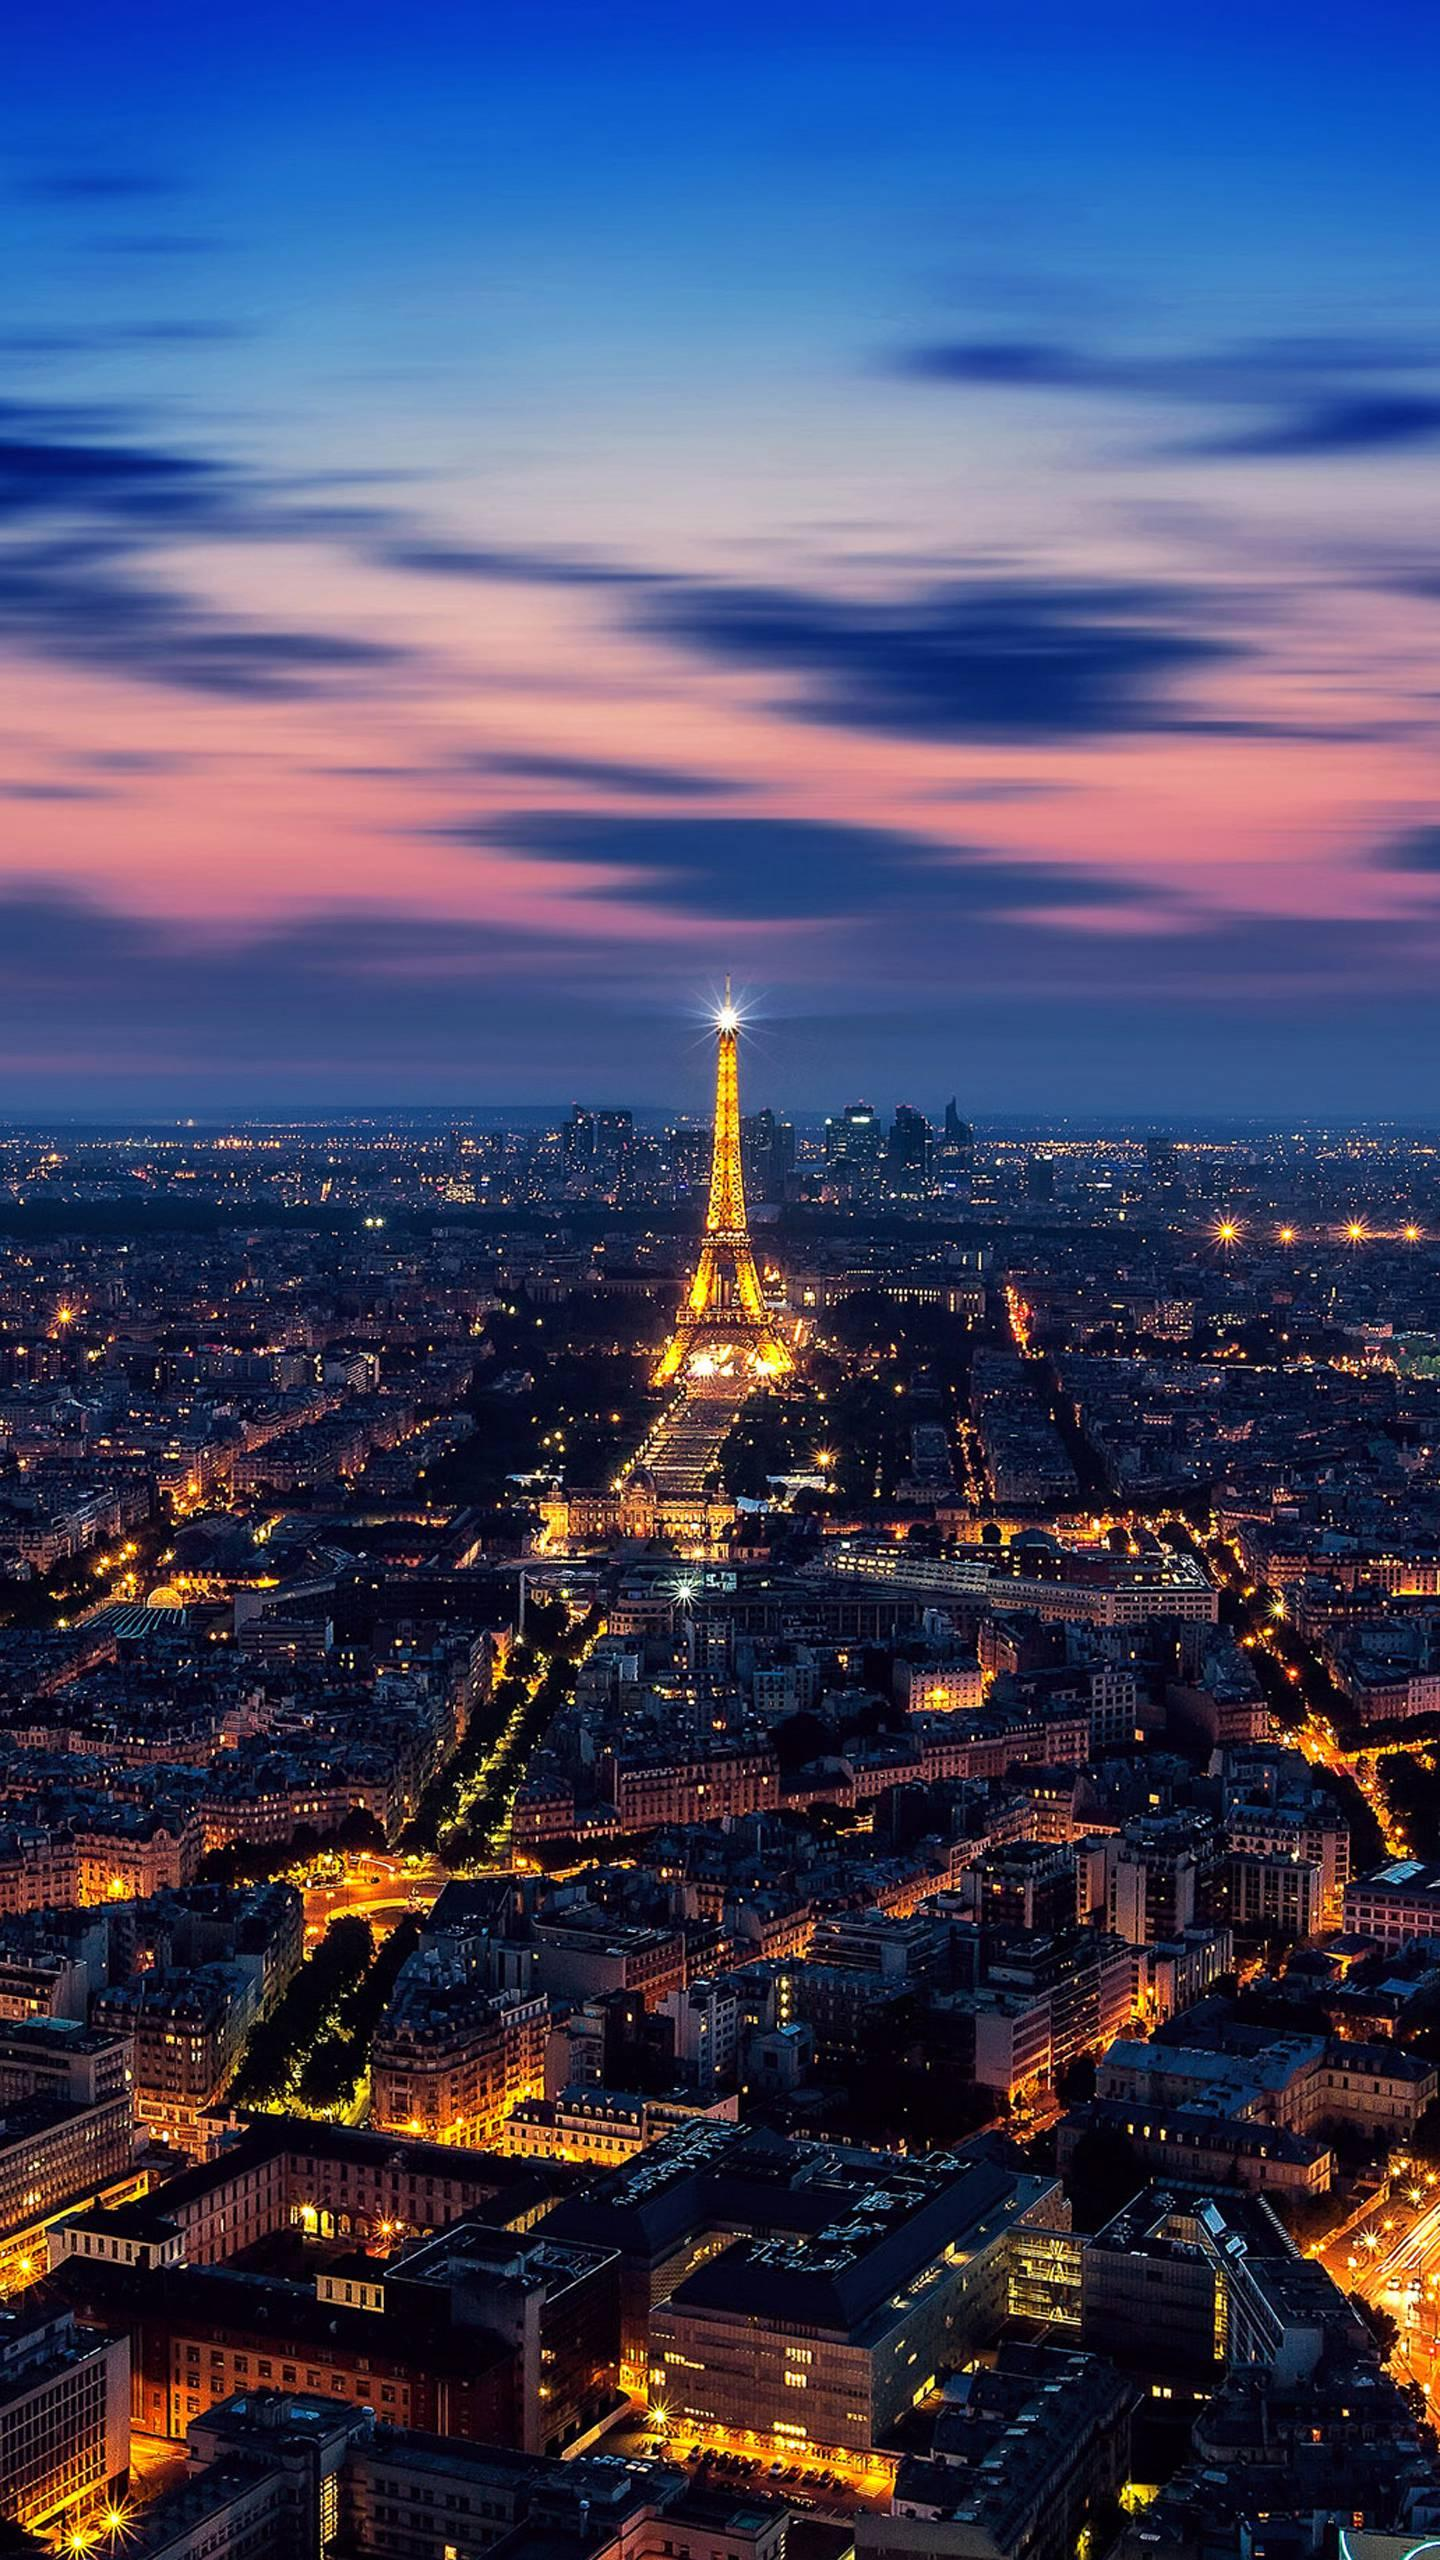 Paris France. It has a history of more than 1,400 years. It is not only France but also the political, economic and cultural center of Western Europe.